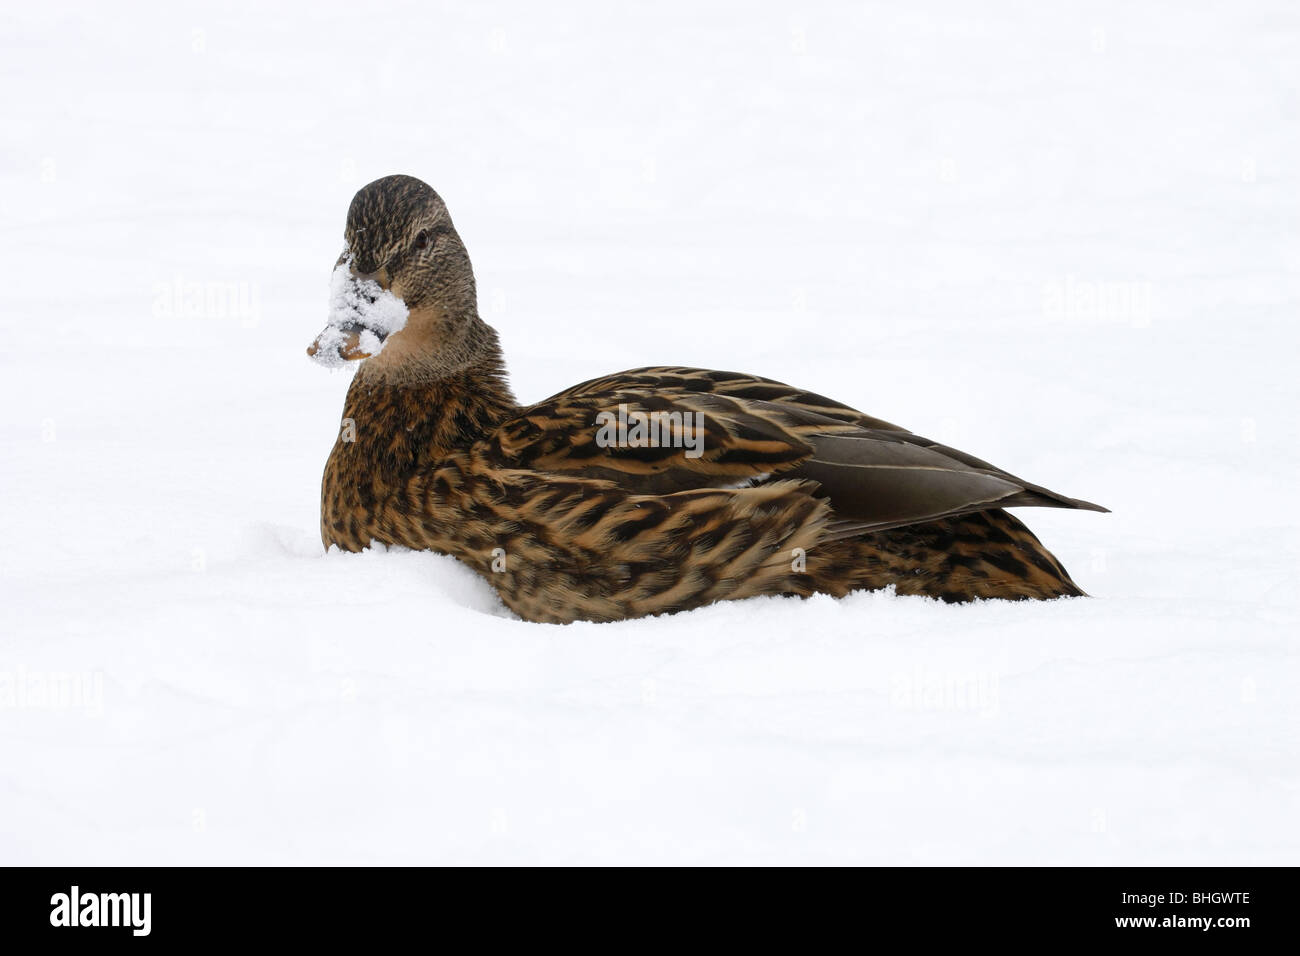 female mallard duck over snow - Stock Image